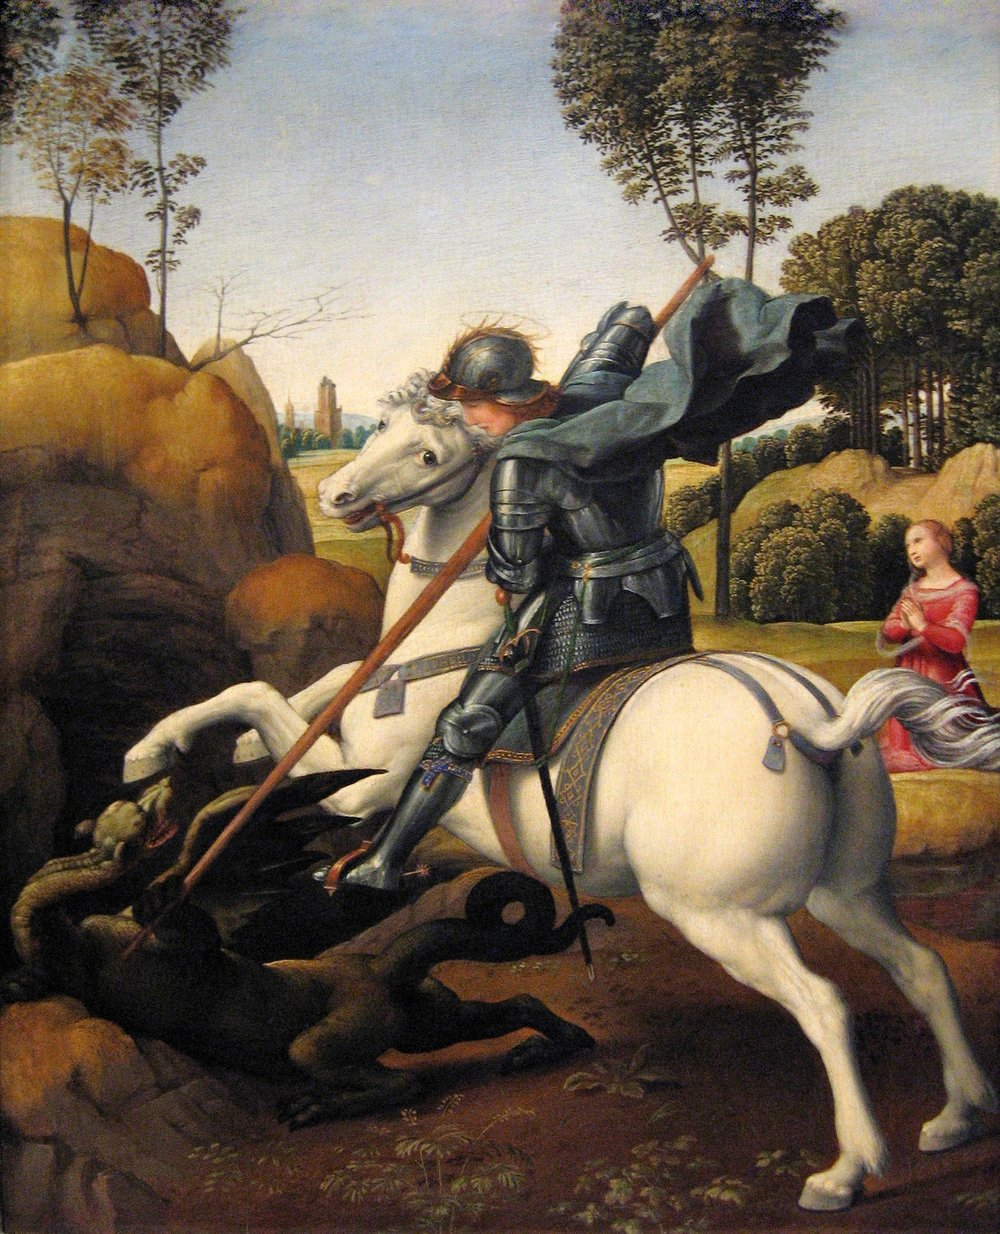 Raphael_-_Saint_George_and_the_Dragon.jpg